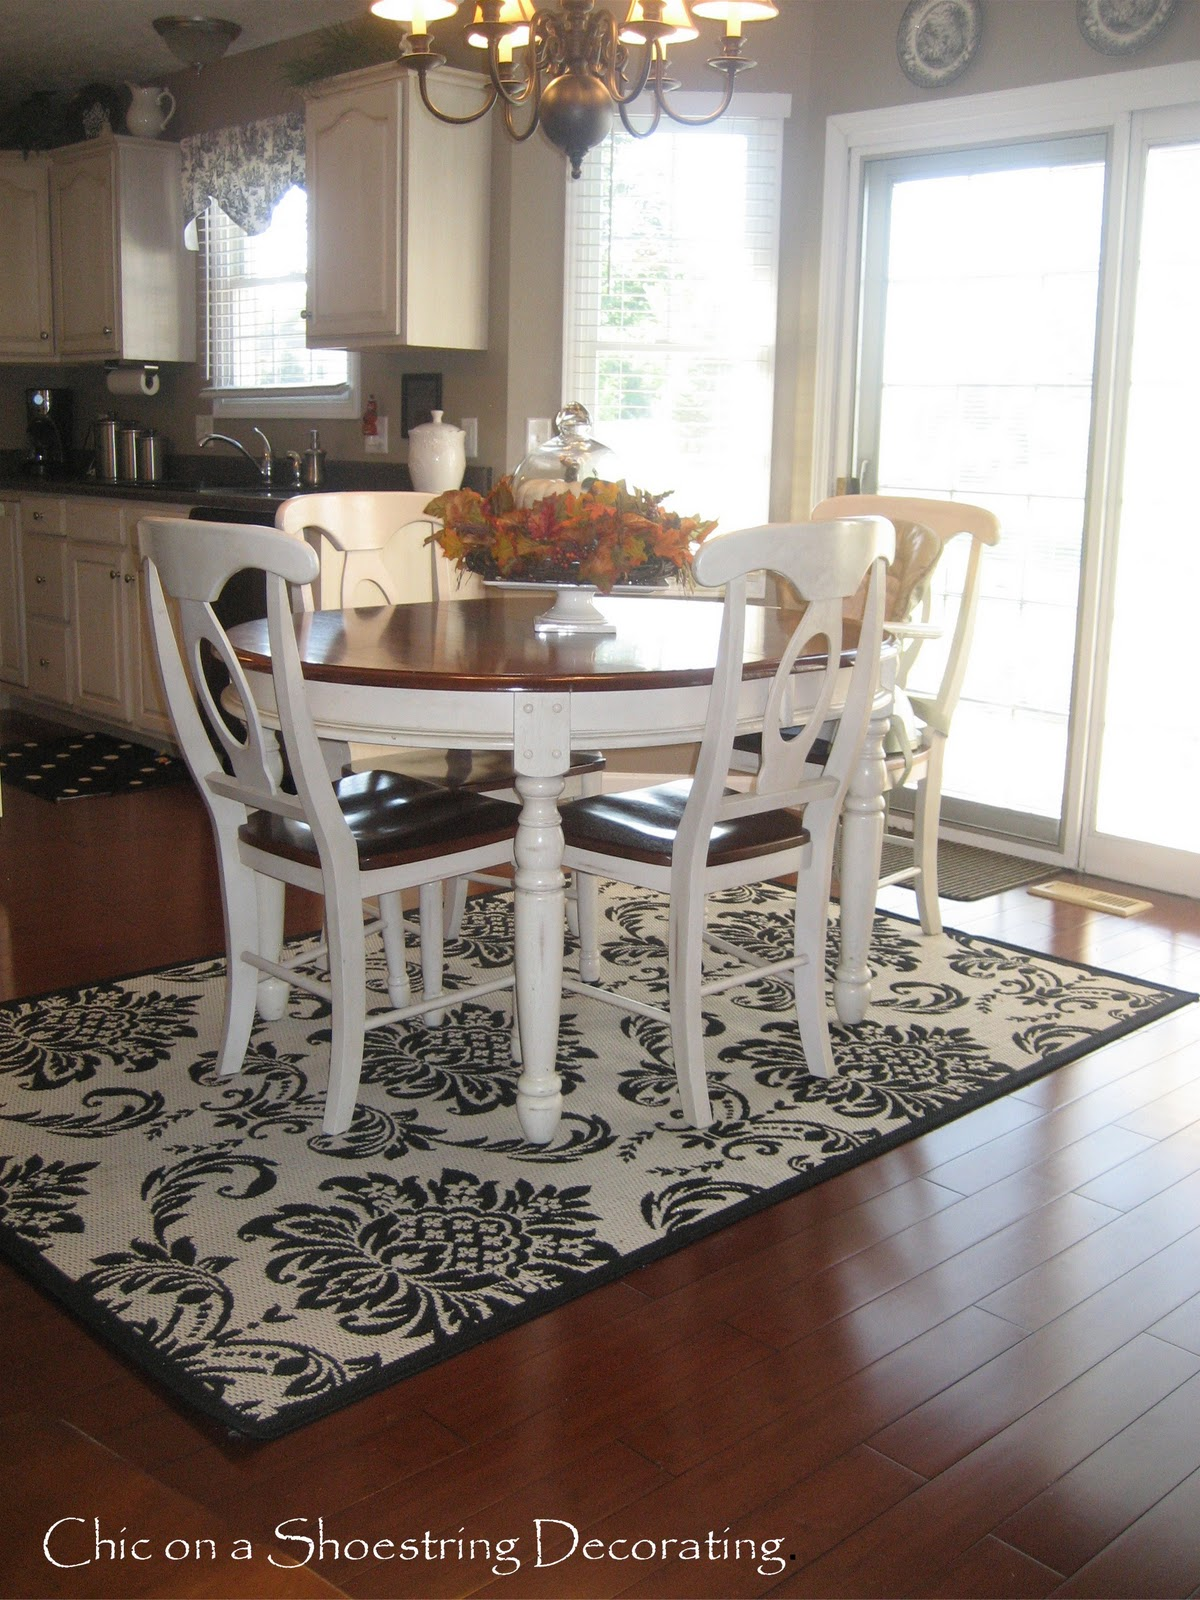 Chic on a shoestring decorating csn damask rug - Decorating with area rugs ...